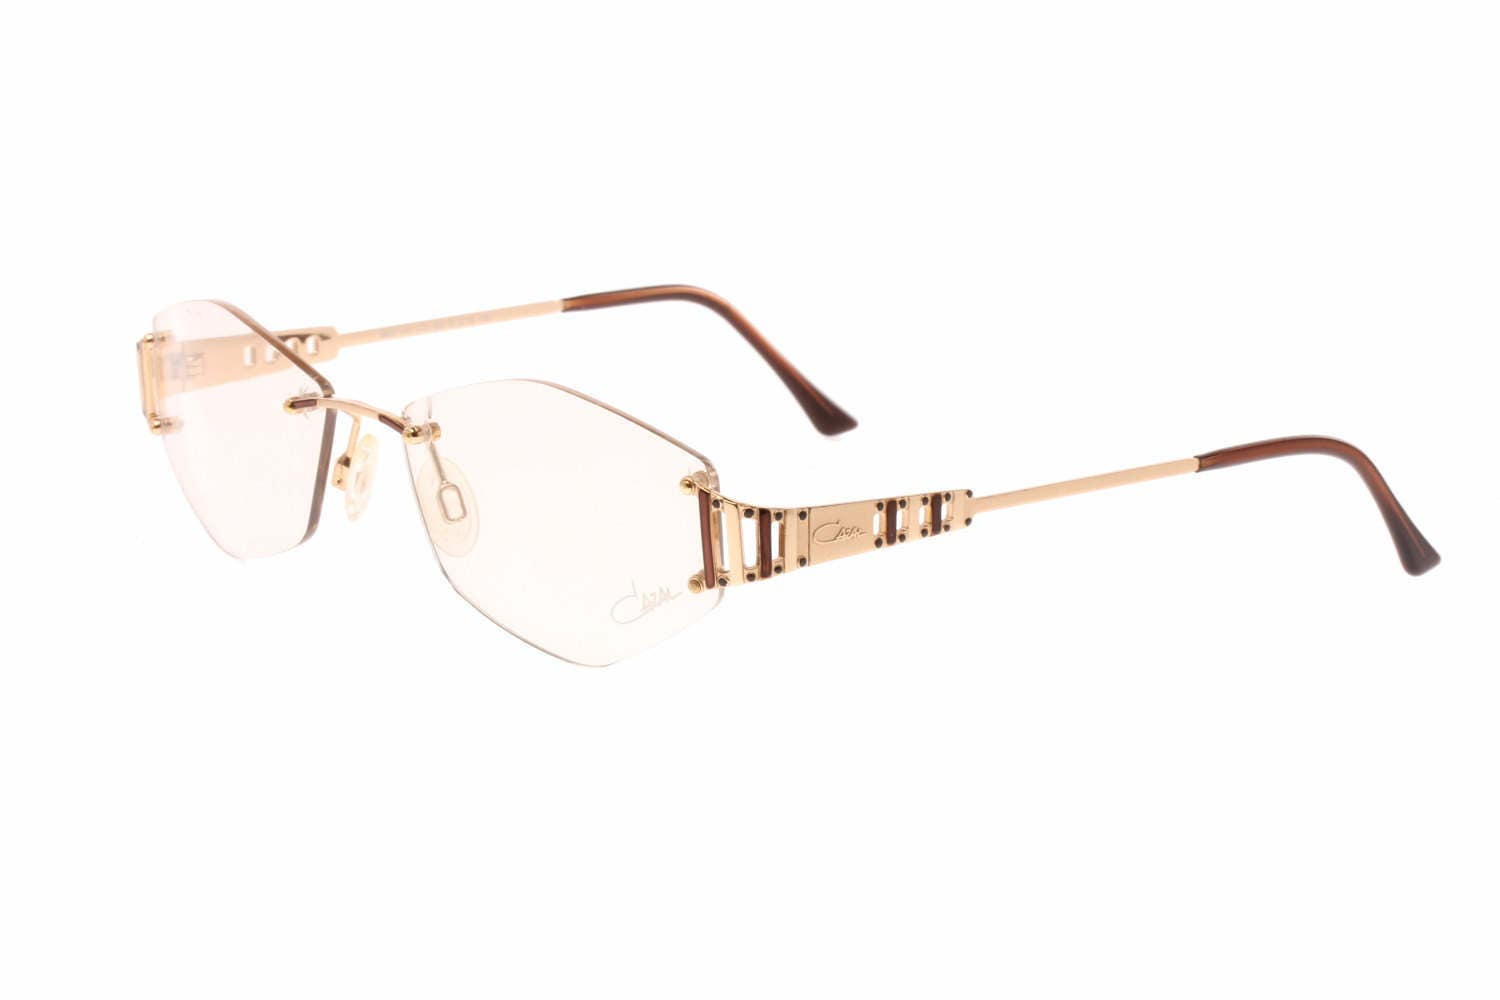 5d1a4abe13 440 col 209 rimless glasant vintage eyeglasses frames with golden metal  cutoff temples